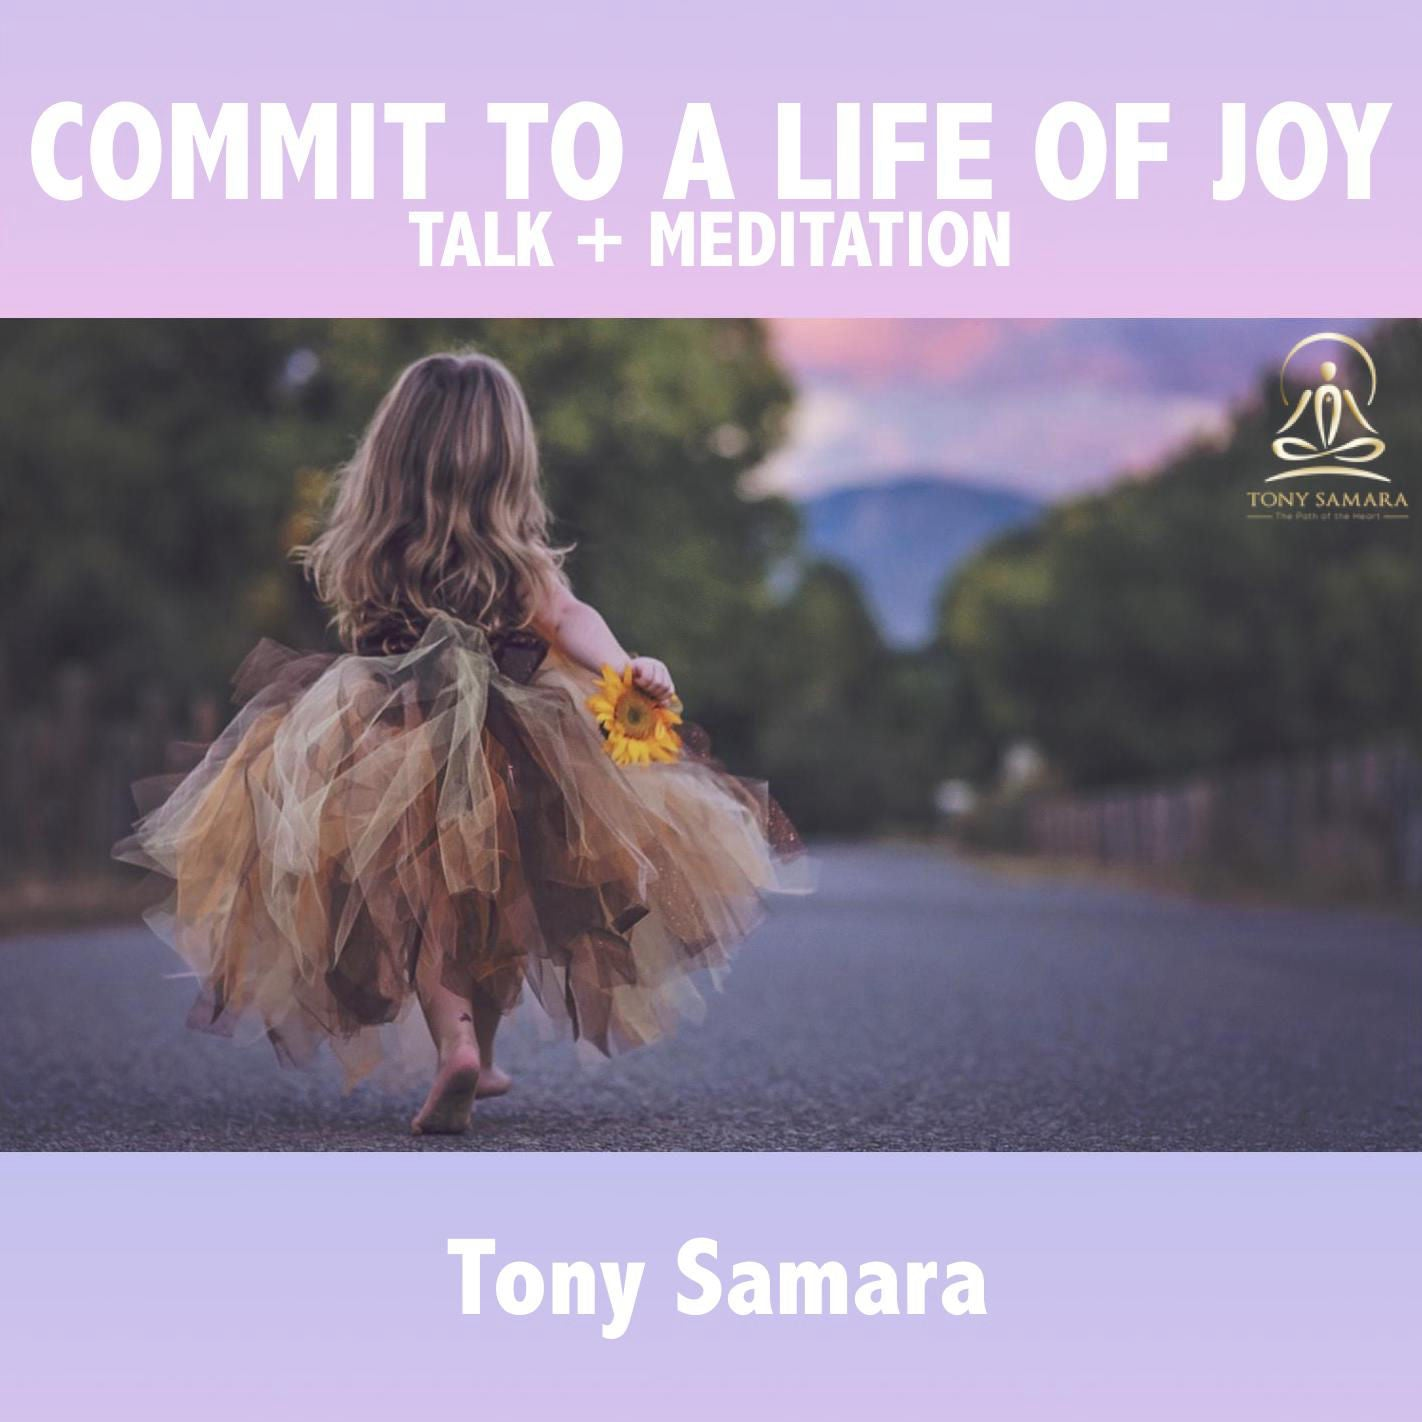 Commit to a Life of Joy - Talk + Meditation - Tony Samara Meditation